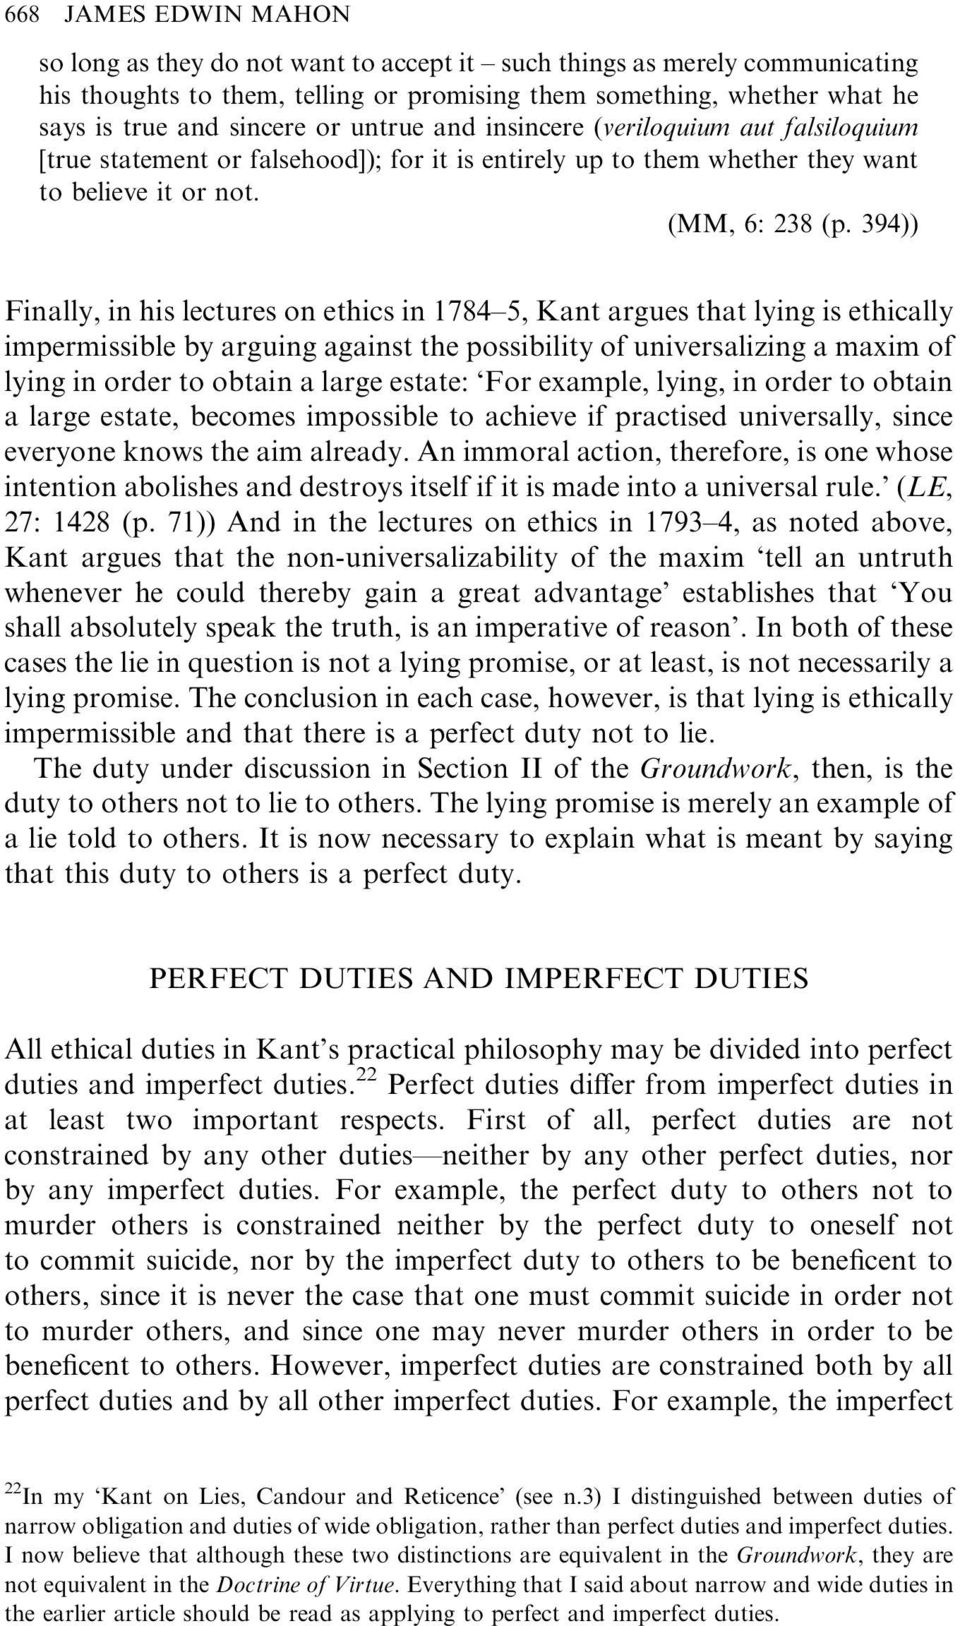 394)) Finally, in his lectures on ethics in 1784 5, Kant argues that lying is ethically impermissible by arguing against the possibility of universalizing a maxim of lying in order to obtain a large